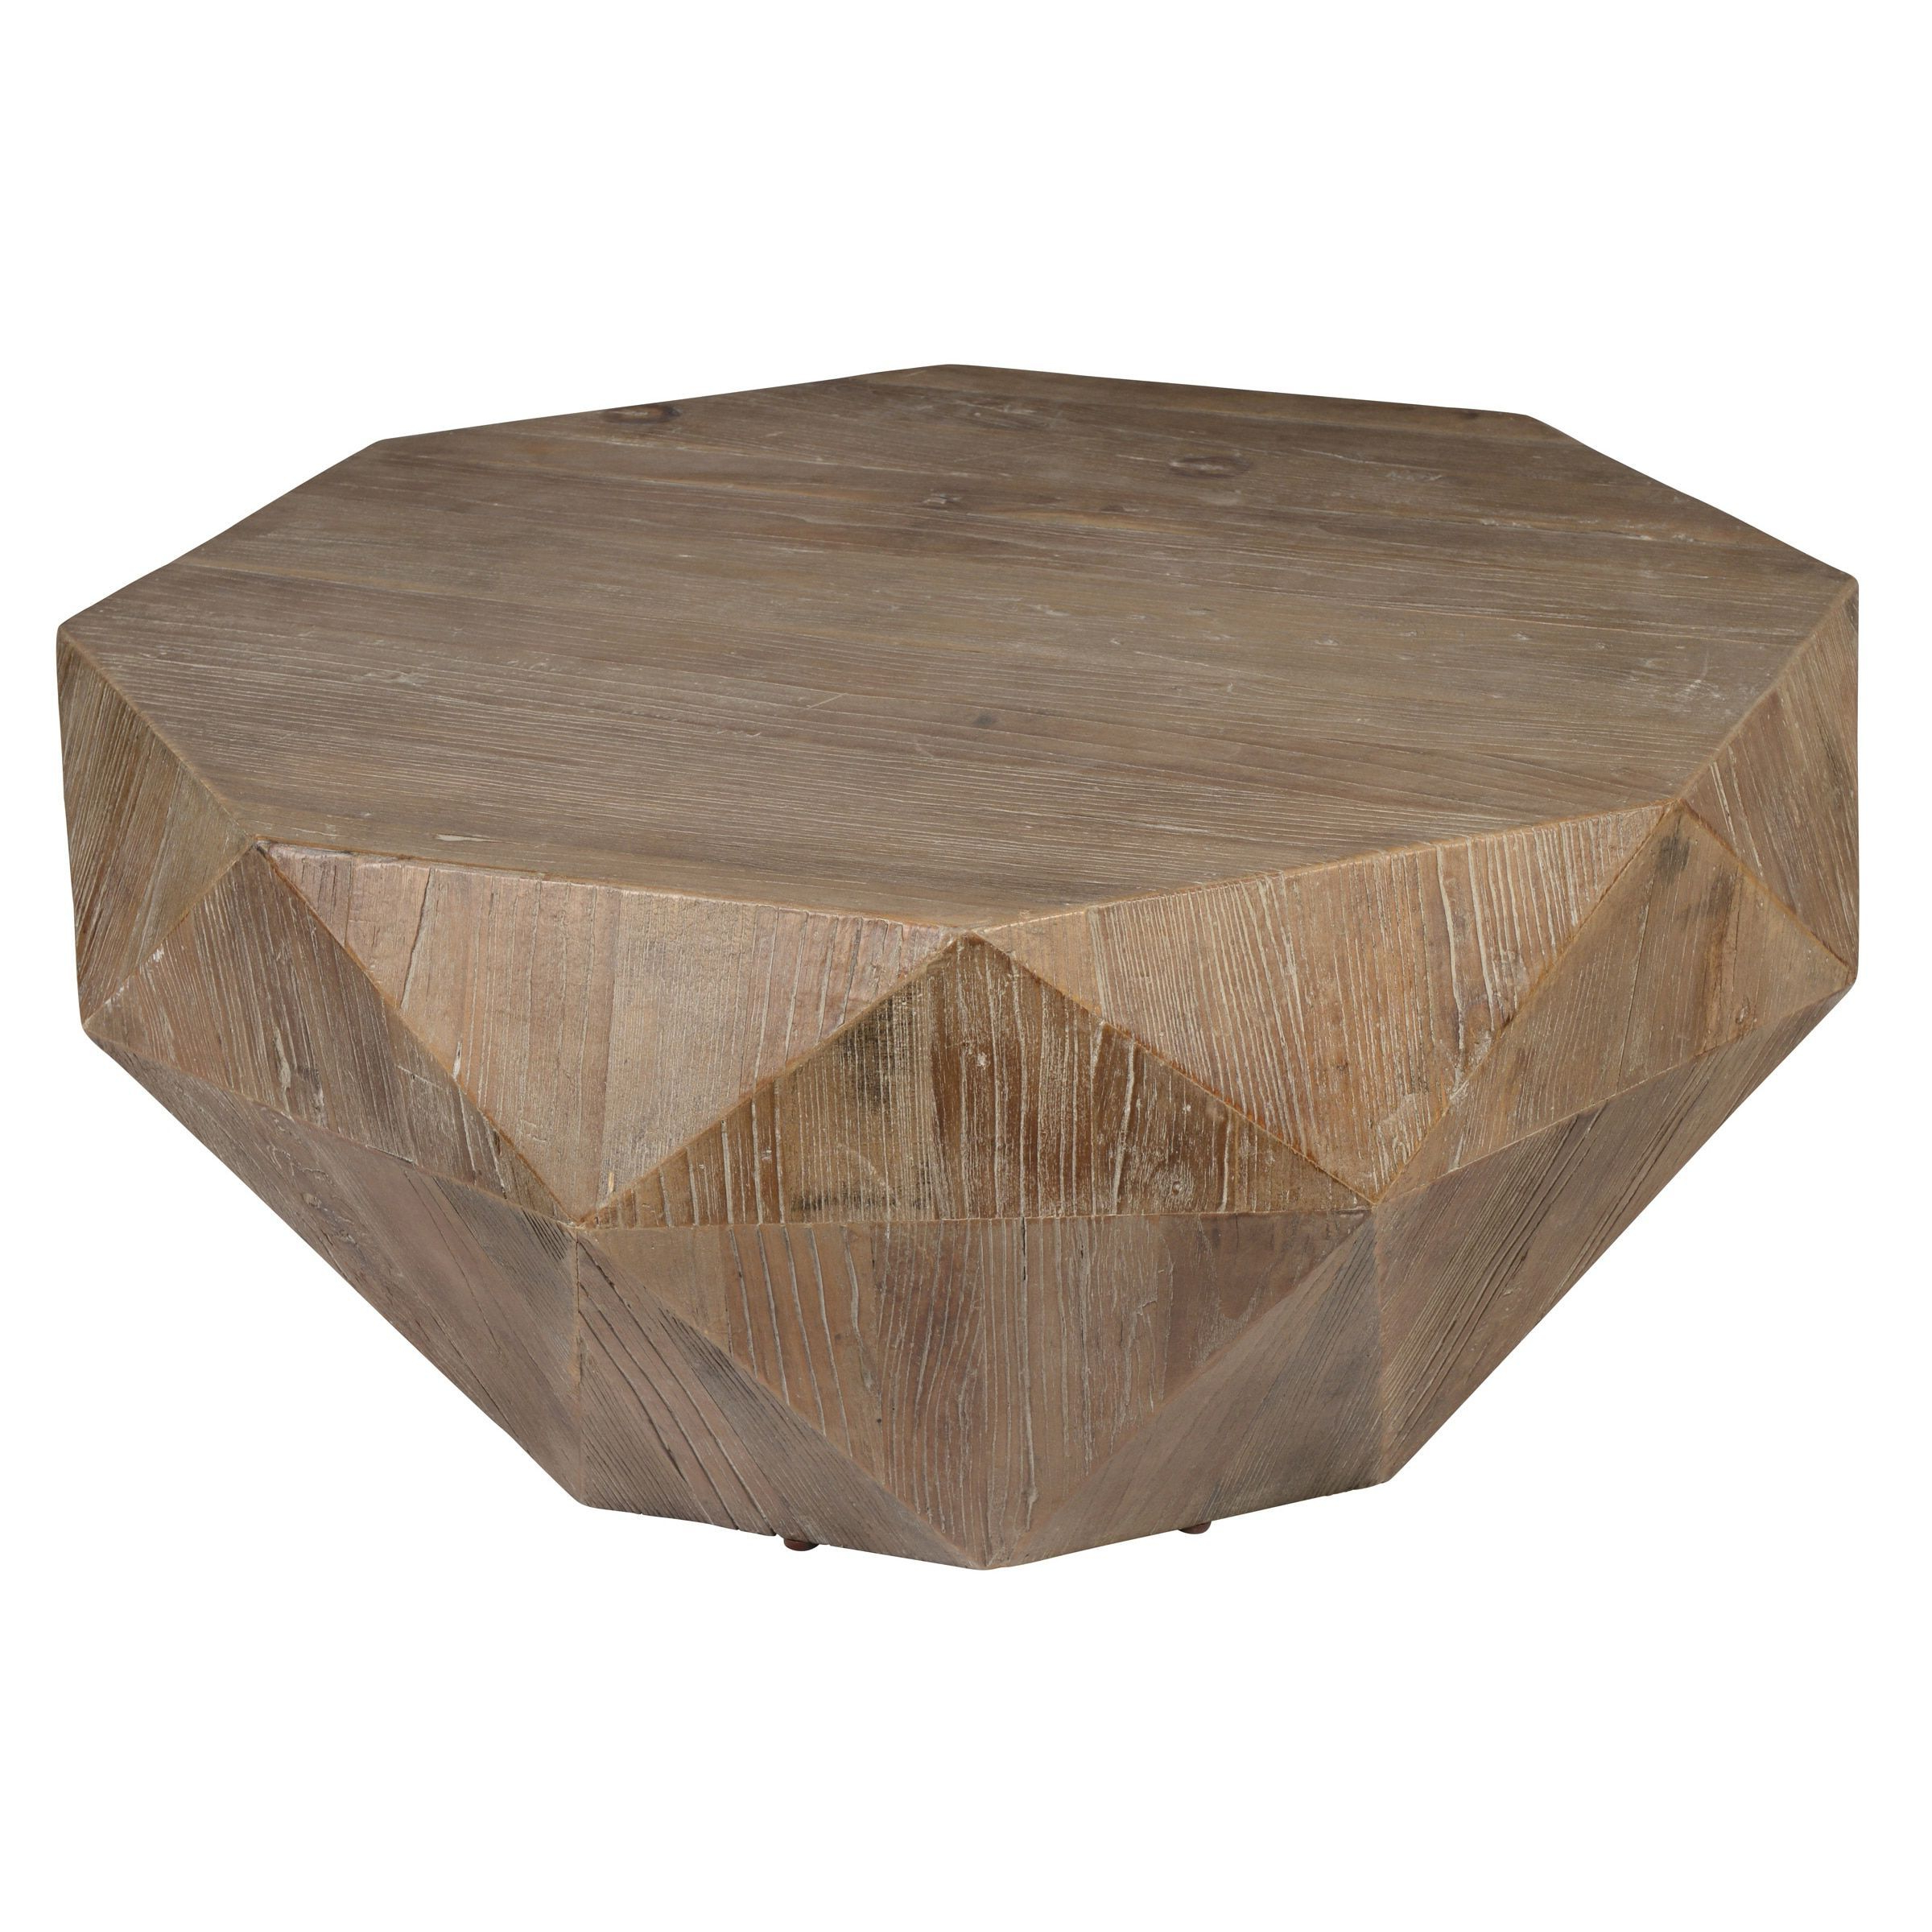 Casablanca Coffee Tables Pertaining To Well Known Kosas Home Transitional Casablanca Coffee Table (Natural Geometric (View 6 of 20)